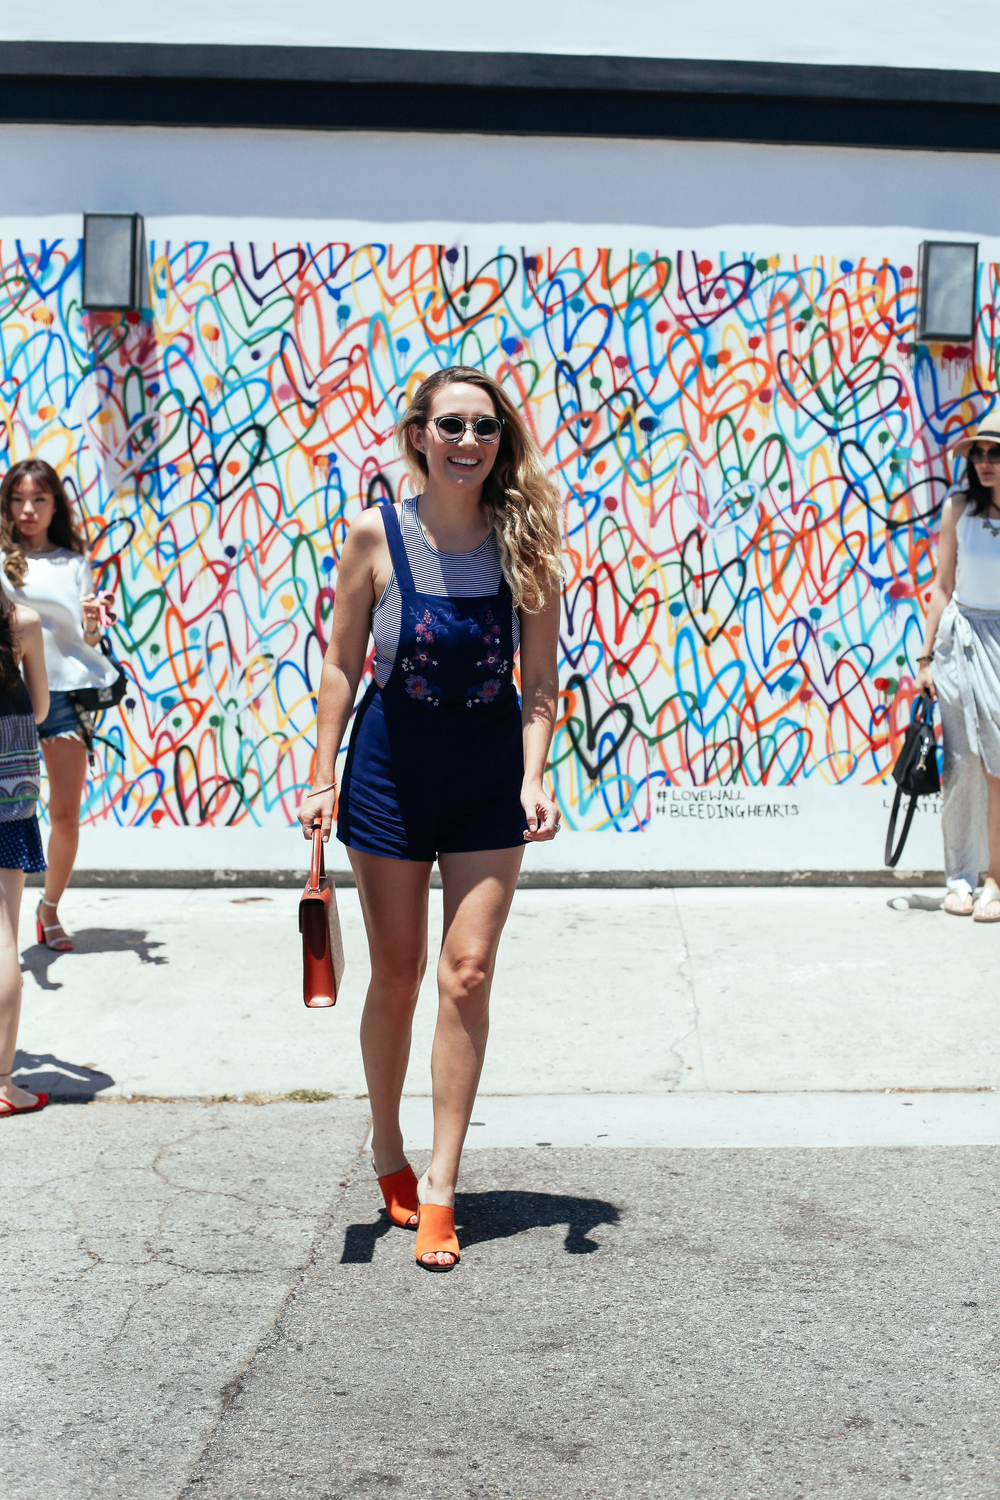 Me literally LOLing whilst trying to get a snap amongst stubborn tourists on the Love Wall, off of Abbot Kinney in Venice Beach. Not pictured: my friends laughing at me.